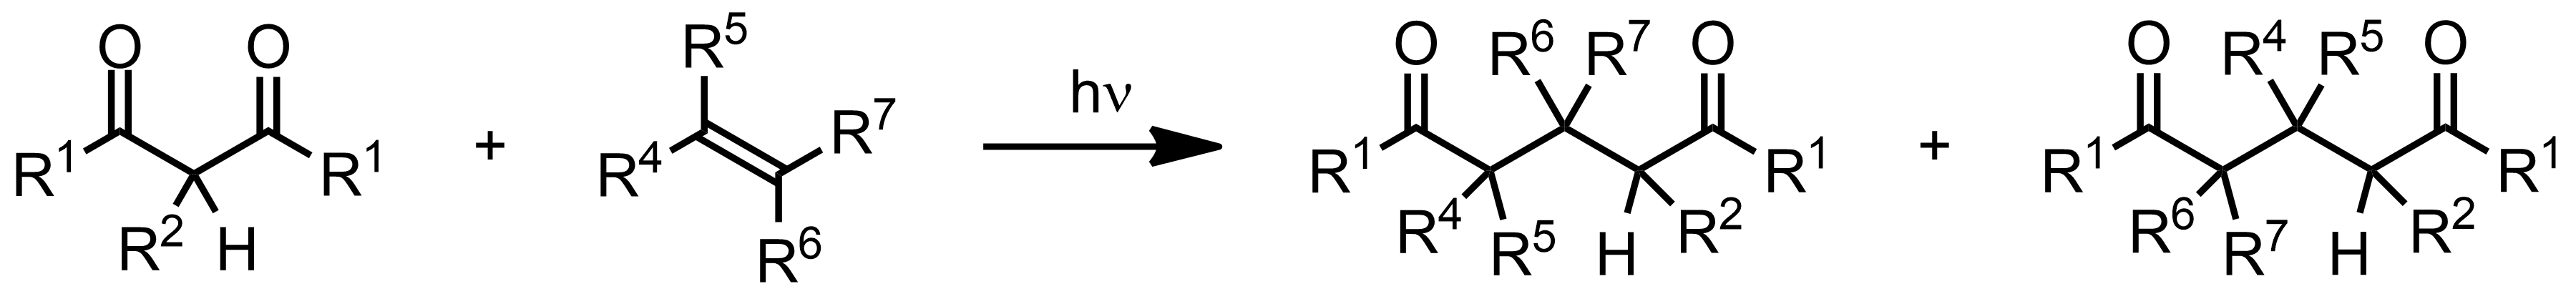 Schematic representation of the De Mayo Reaction.